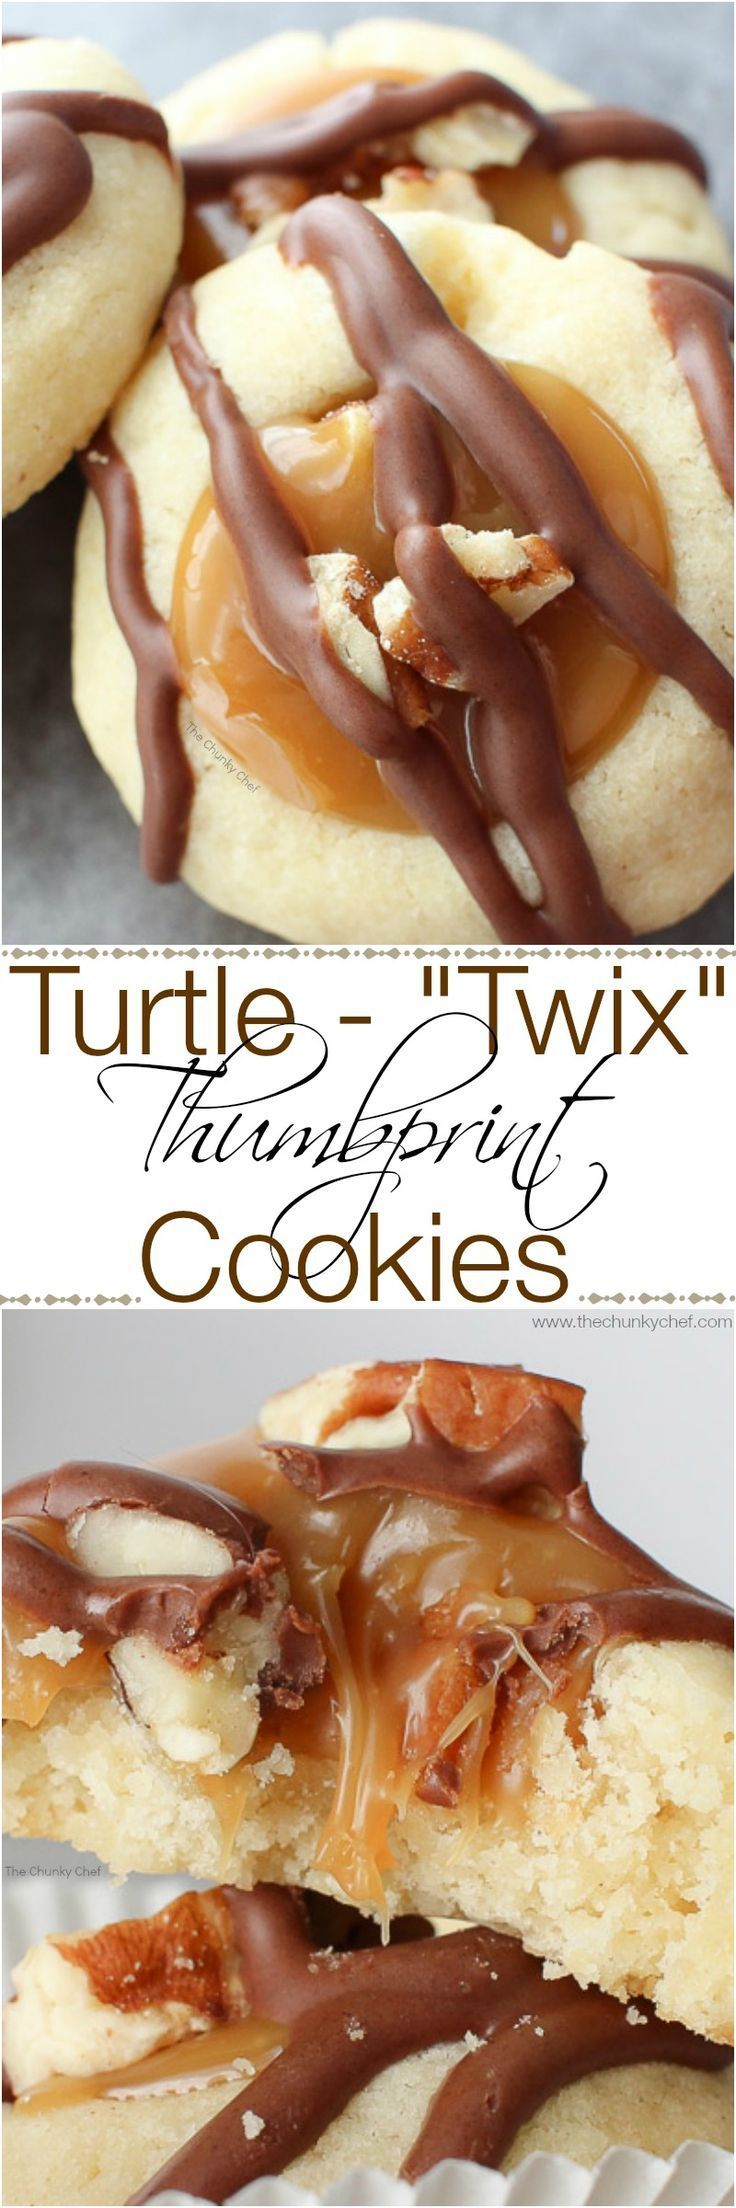 Turtle-Twix Thumbprint Cookies - The Chunky Chef